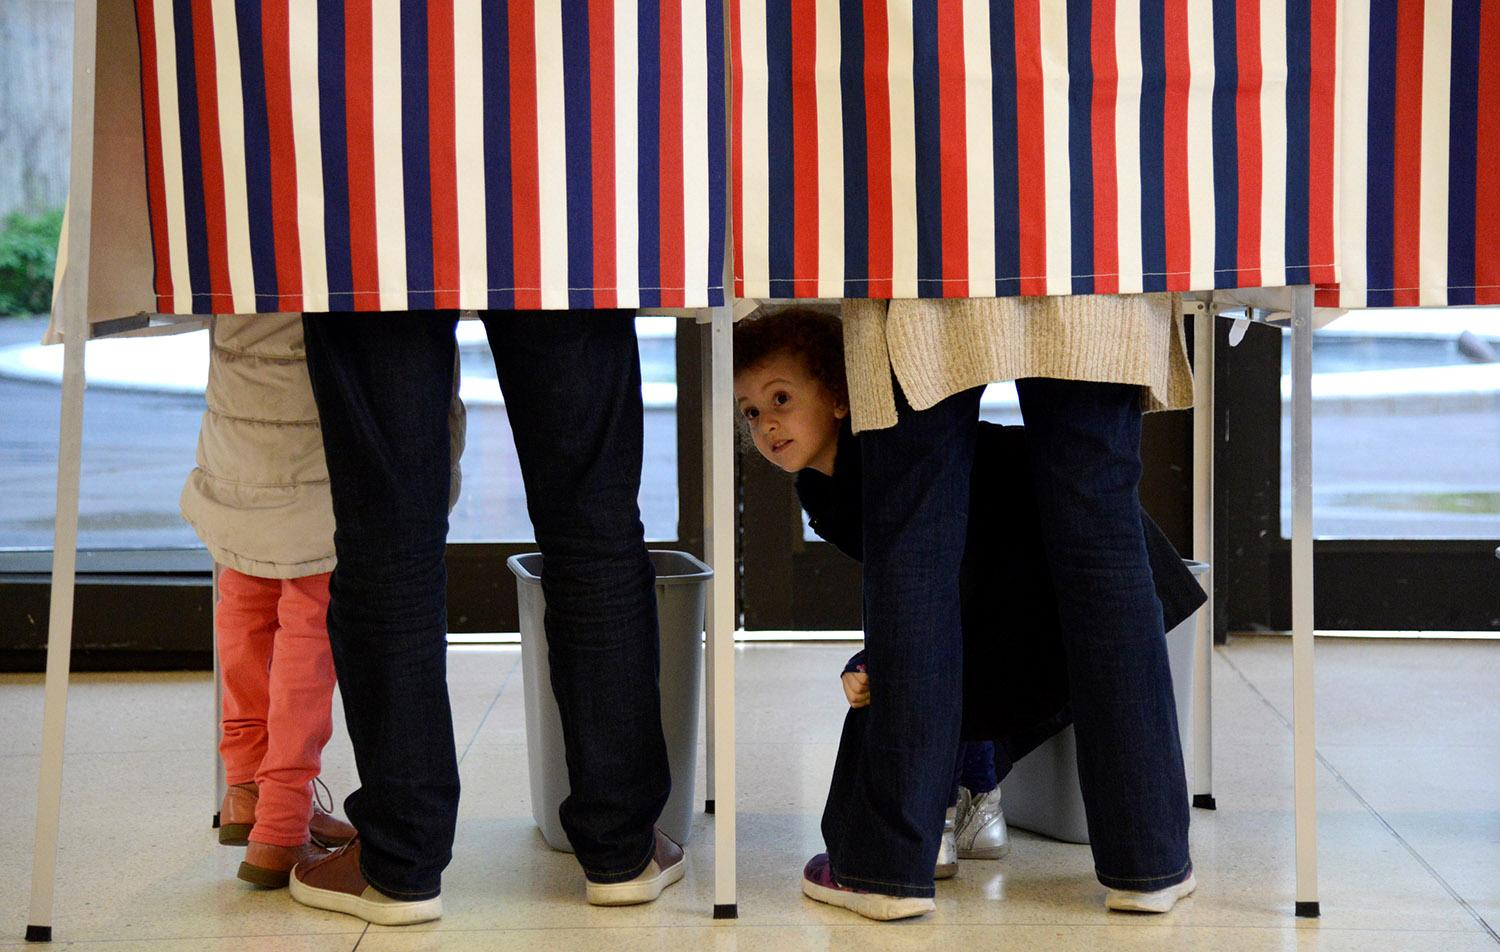 <p>A child looks out from a voting booth as French citizens living in the United States cast their ballots for the French presidential run-off between Emmanuel Macron and Marine Le Pen, at the French Embassy in Washington, May 6, 2017. (Photo: Mike Theiler/Reuters) </p>